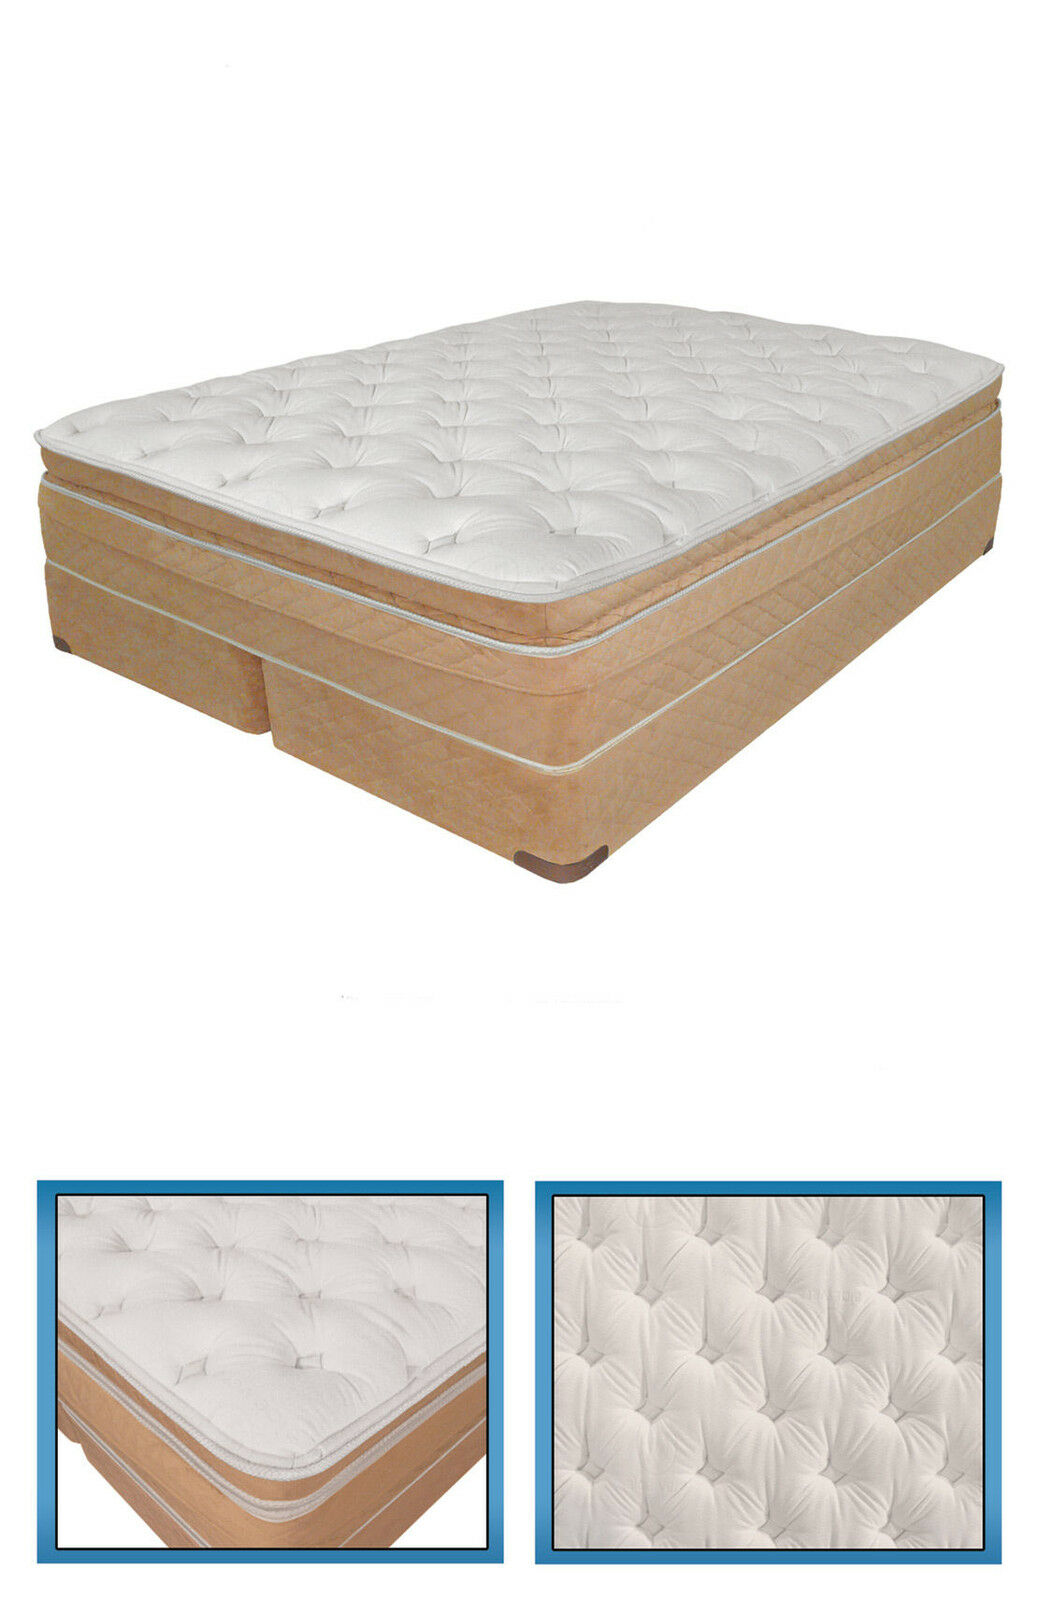 Picture of: Sleep Rize Contemporary Ii Adjustable Bed 12 Innomax Mystique Air Mattress For Sale Online Ebay